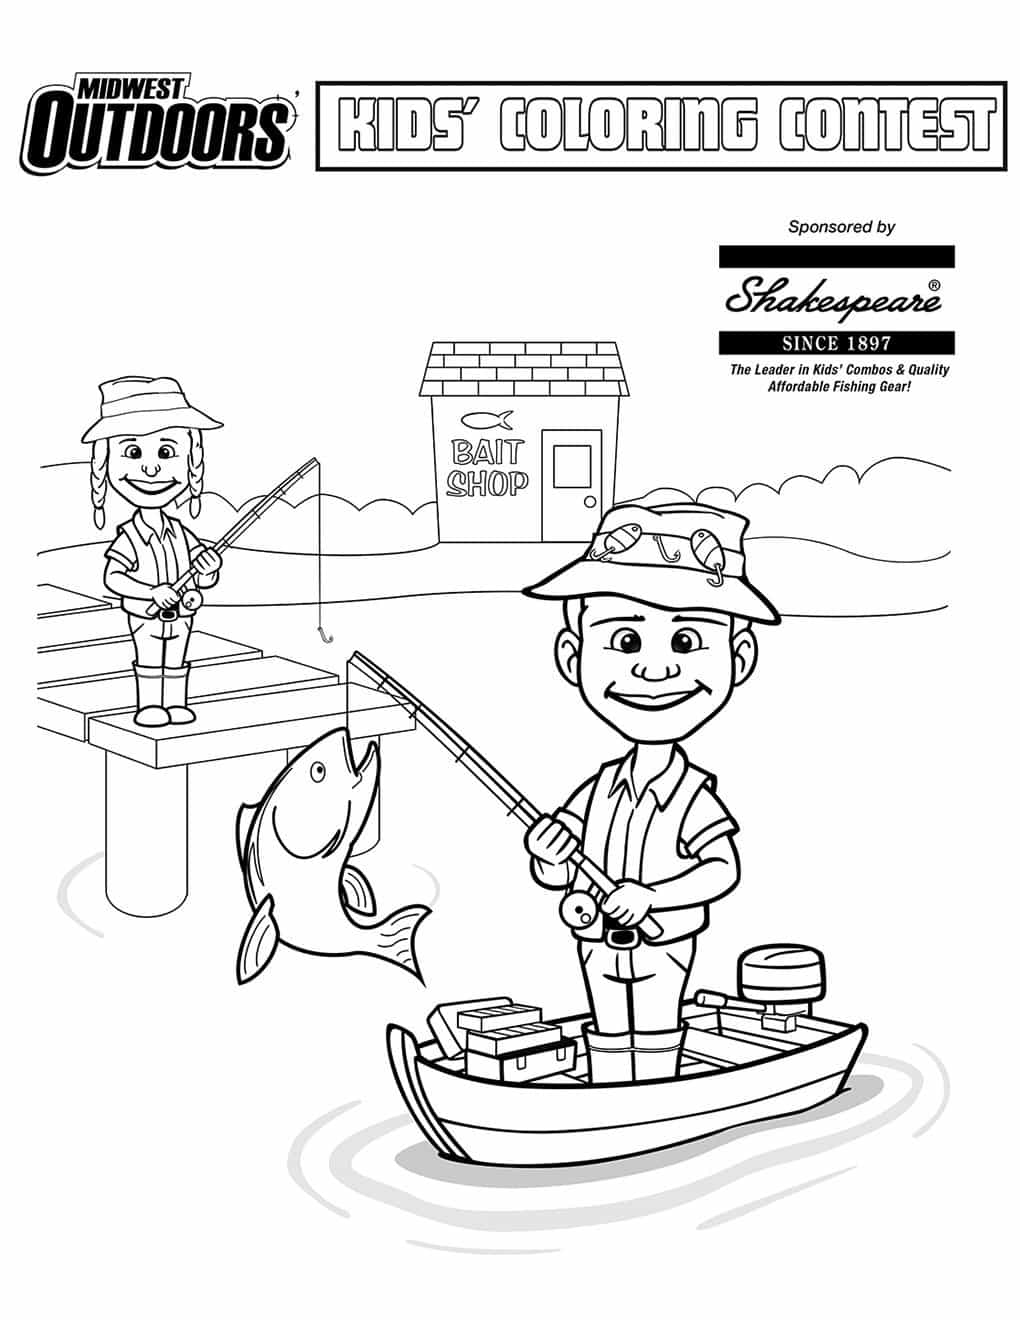 Coloring Contest 2016